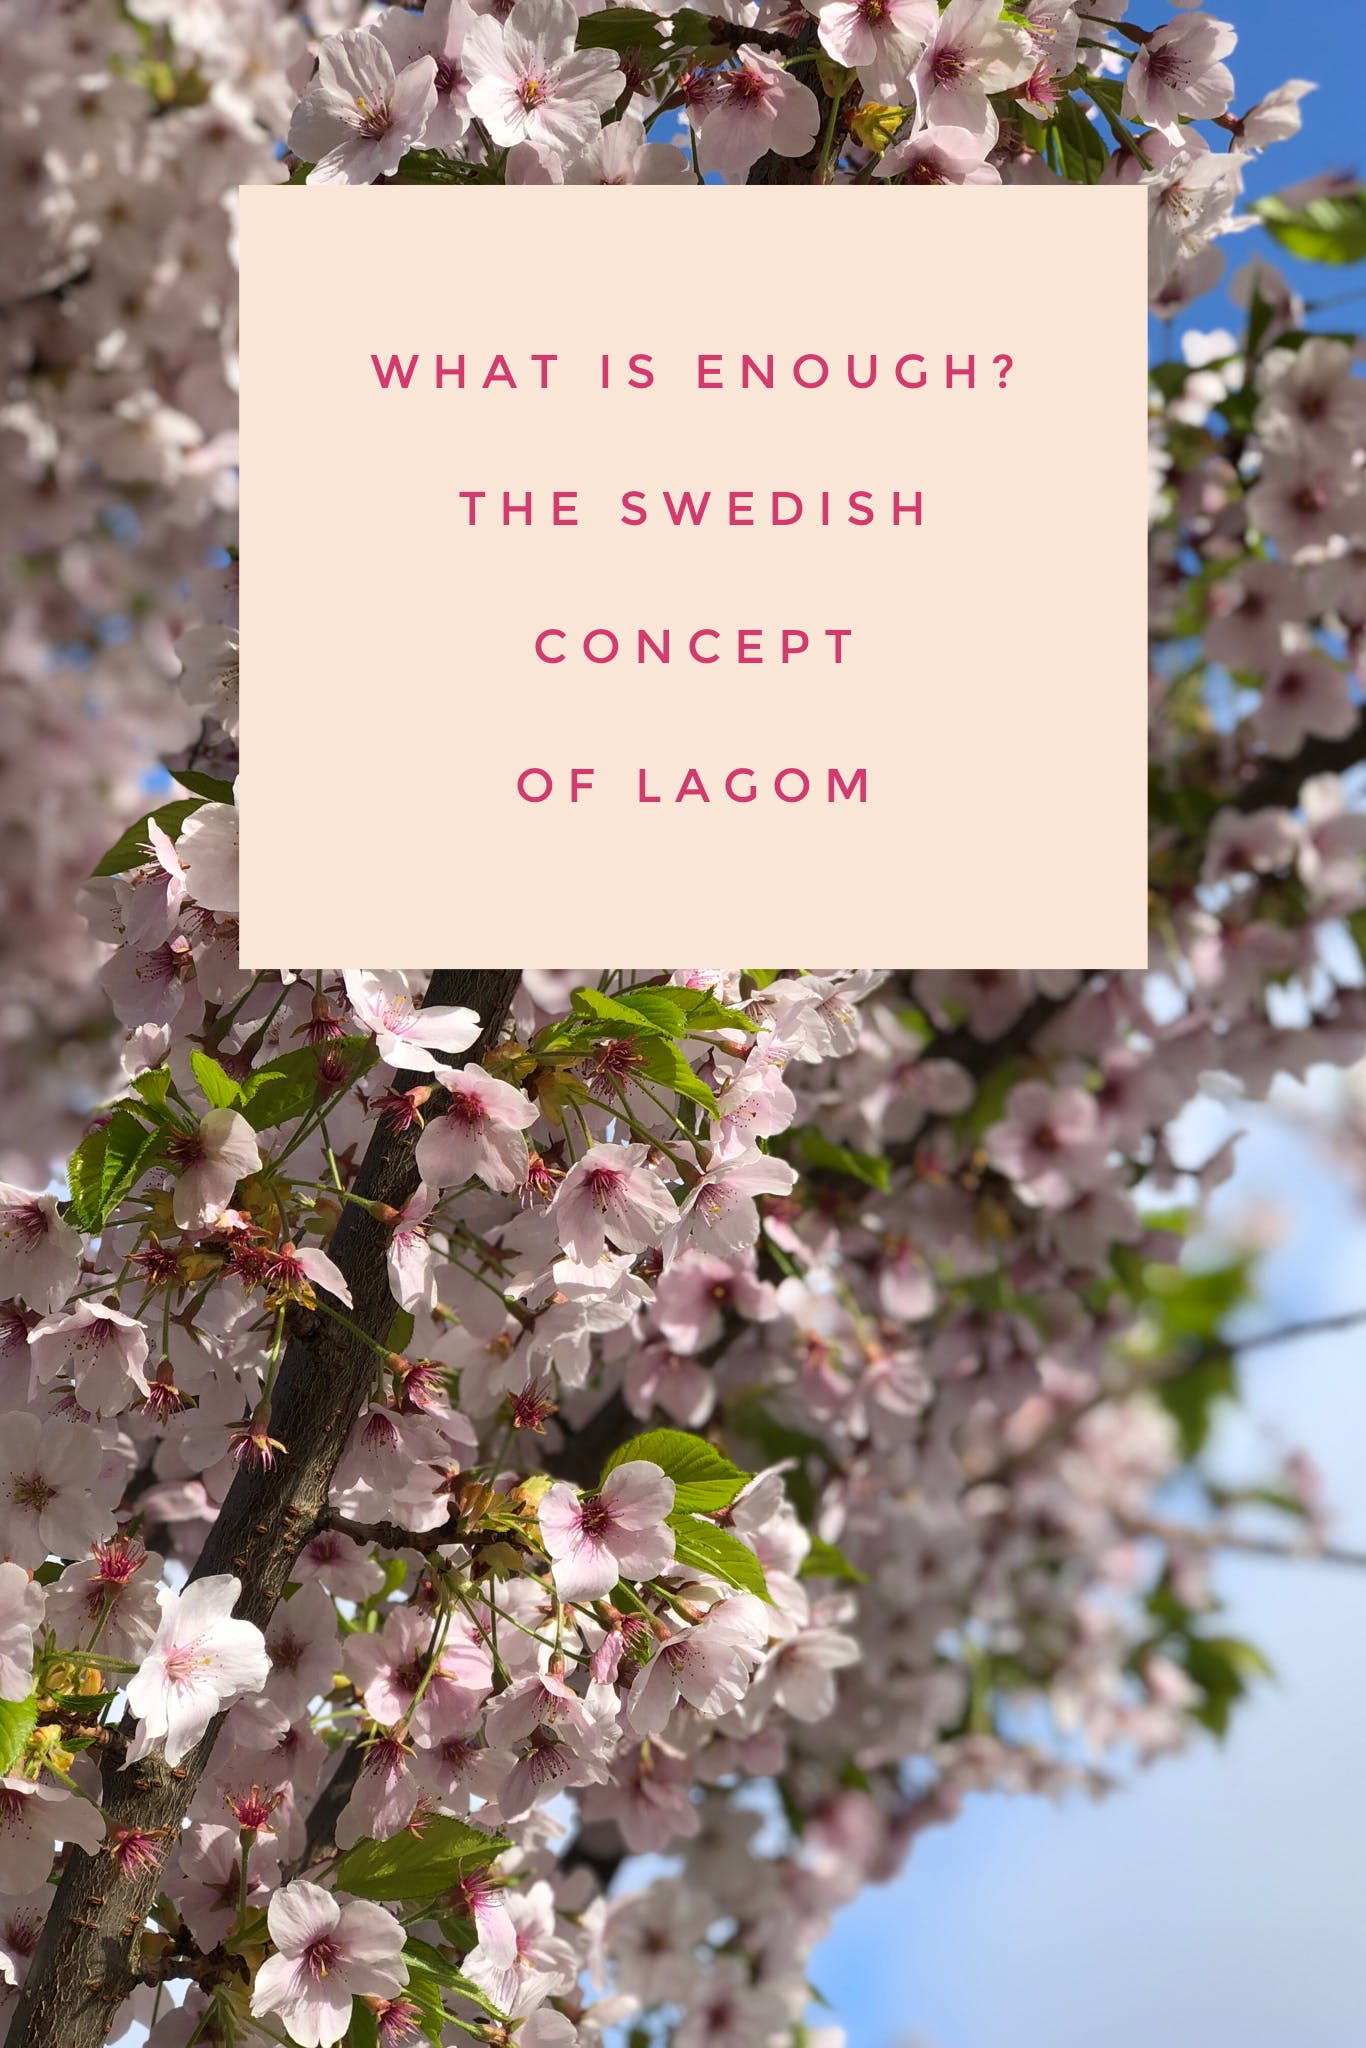 Sweden has a word 'lagom' which describes an inherent part of their culture that is all about life being not too little or too much but just enough